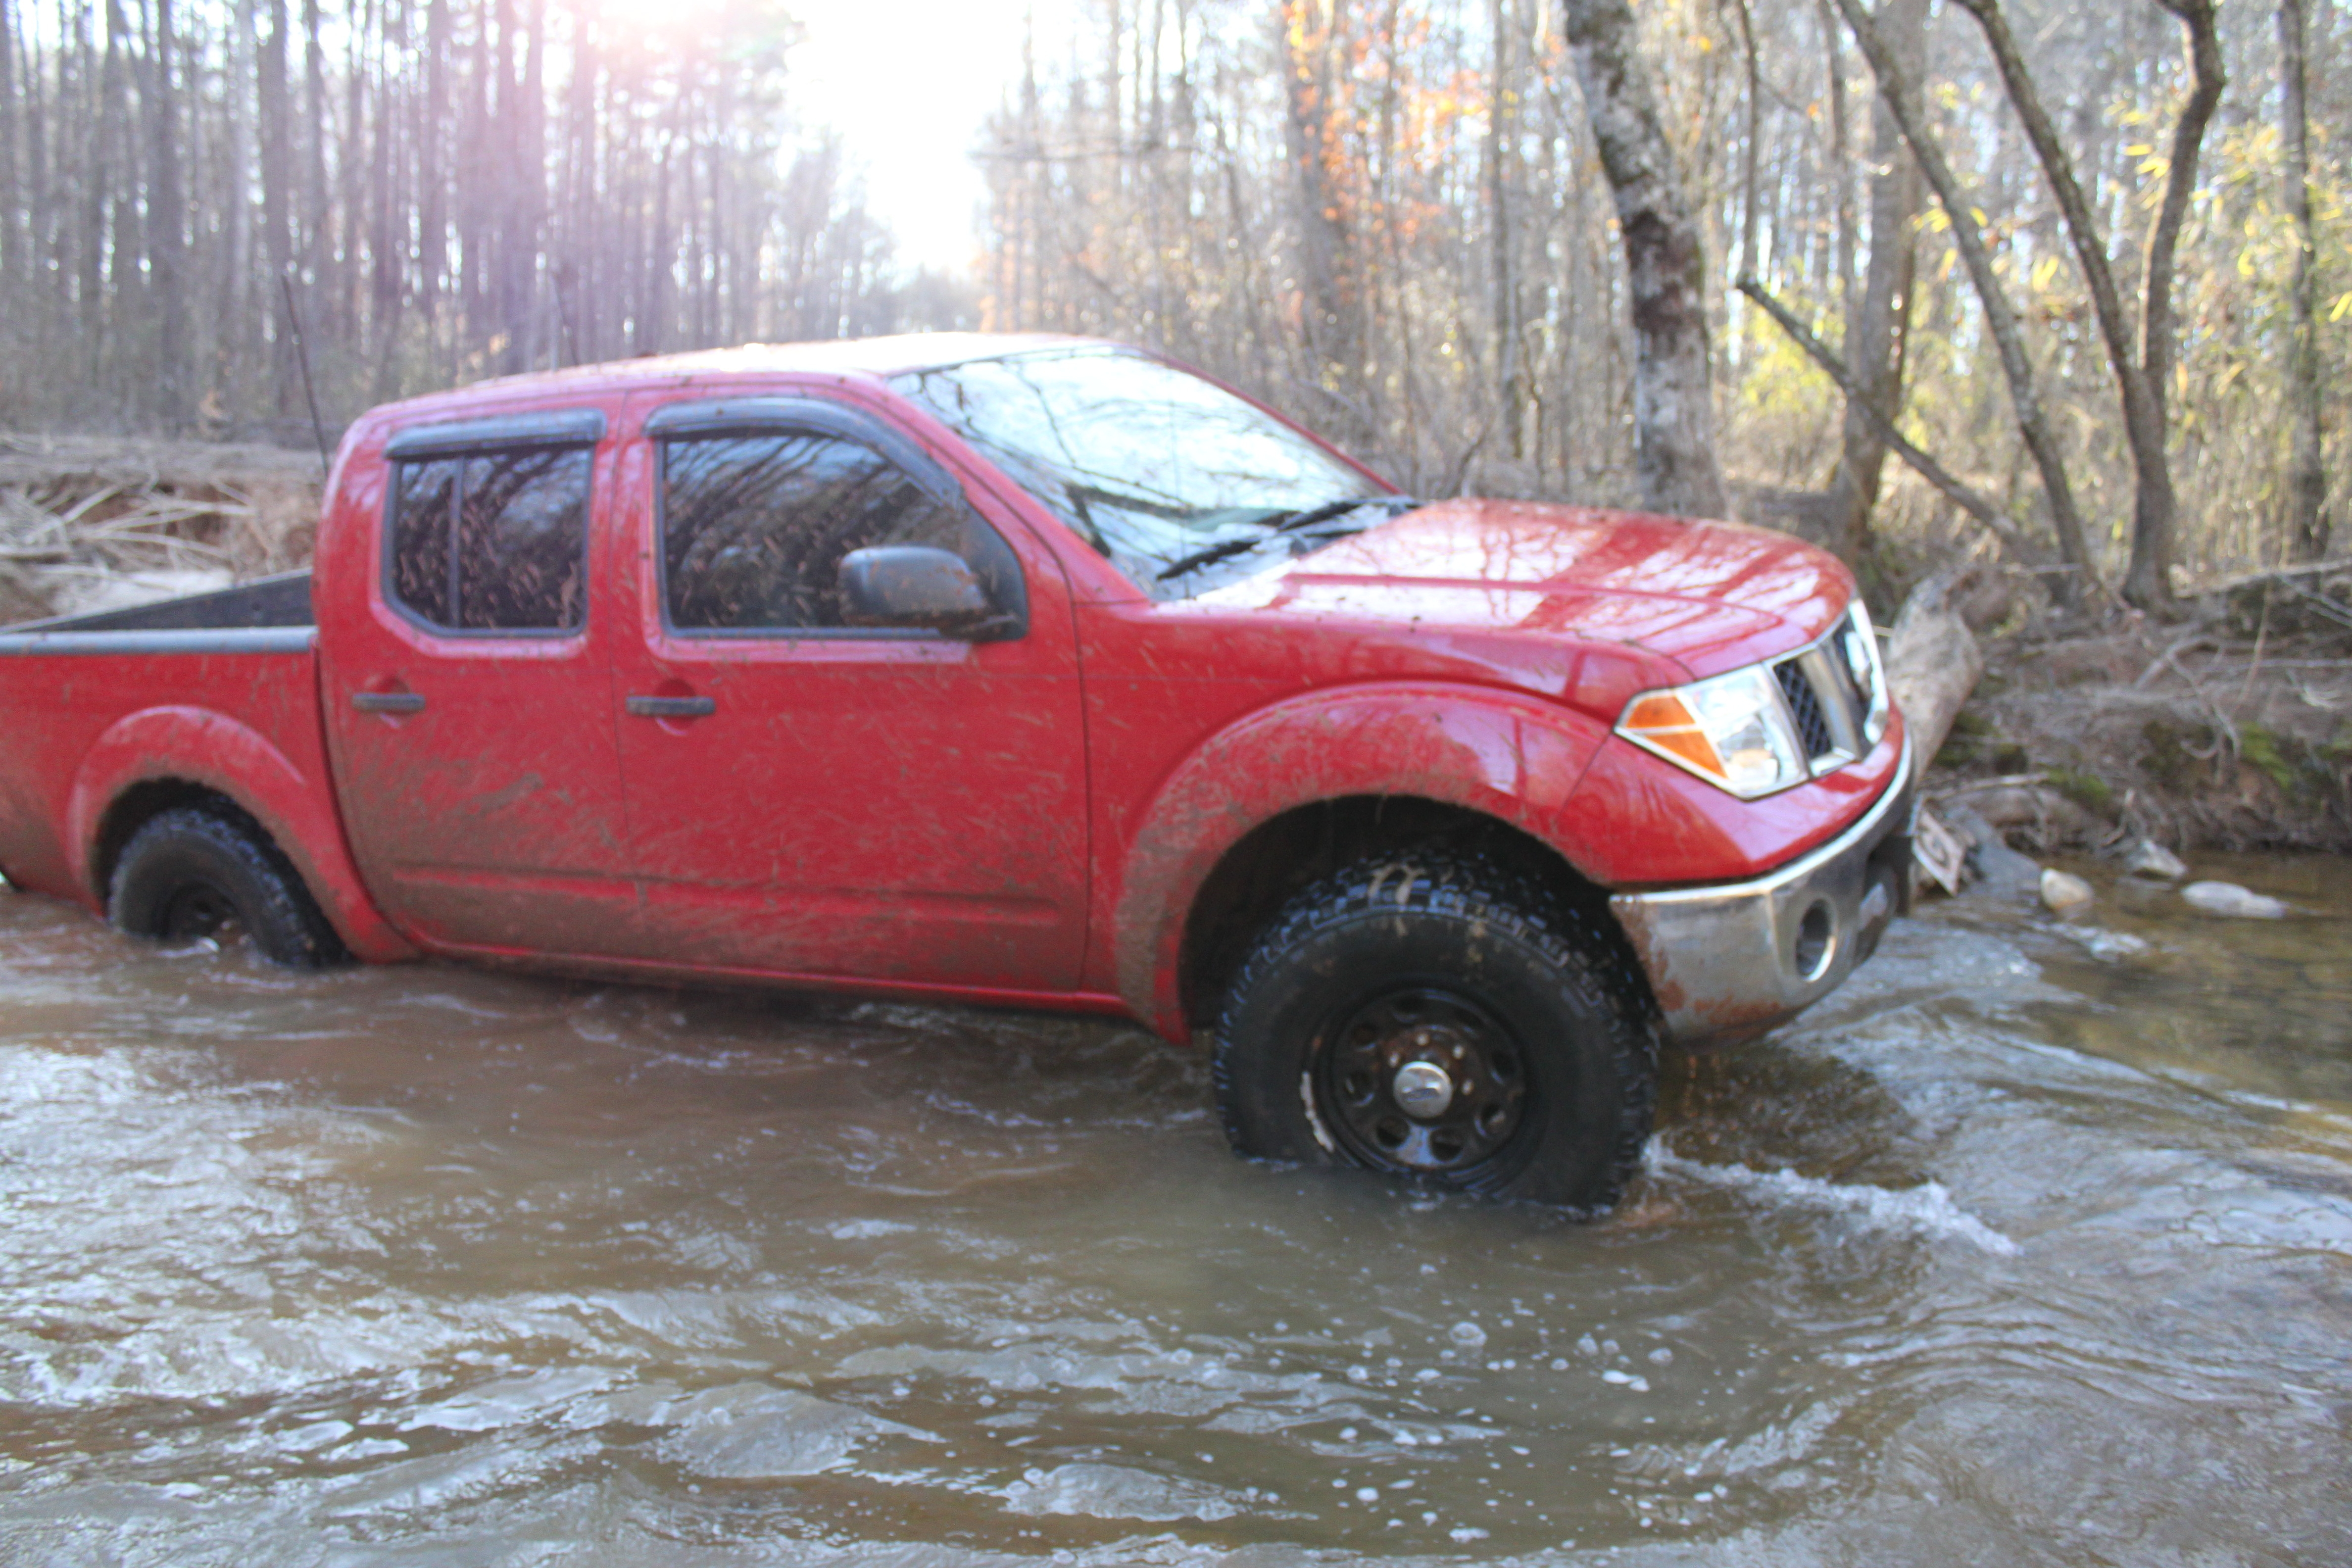 Another Dustinhlstd1209 2006 Nissan Frontier Crew Cab post... - 14461201